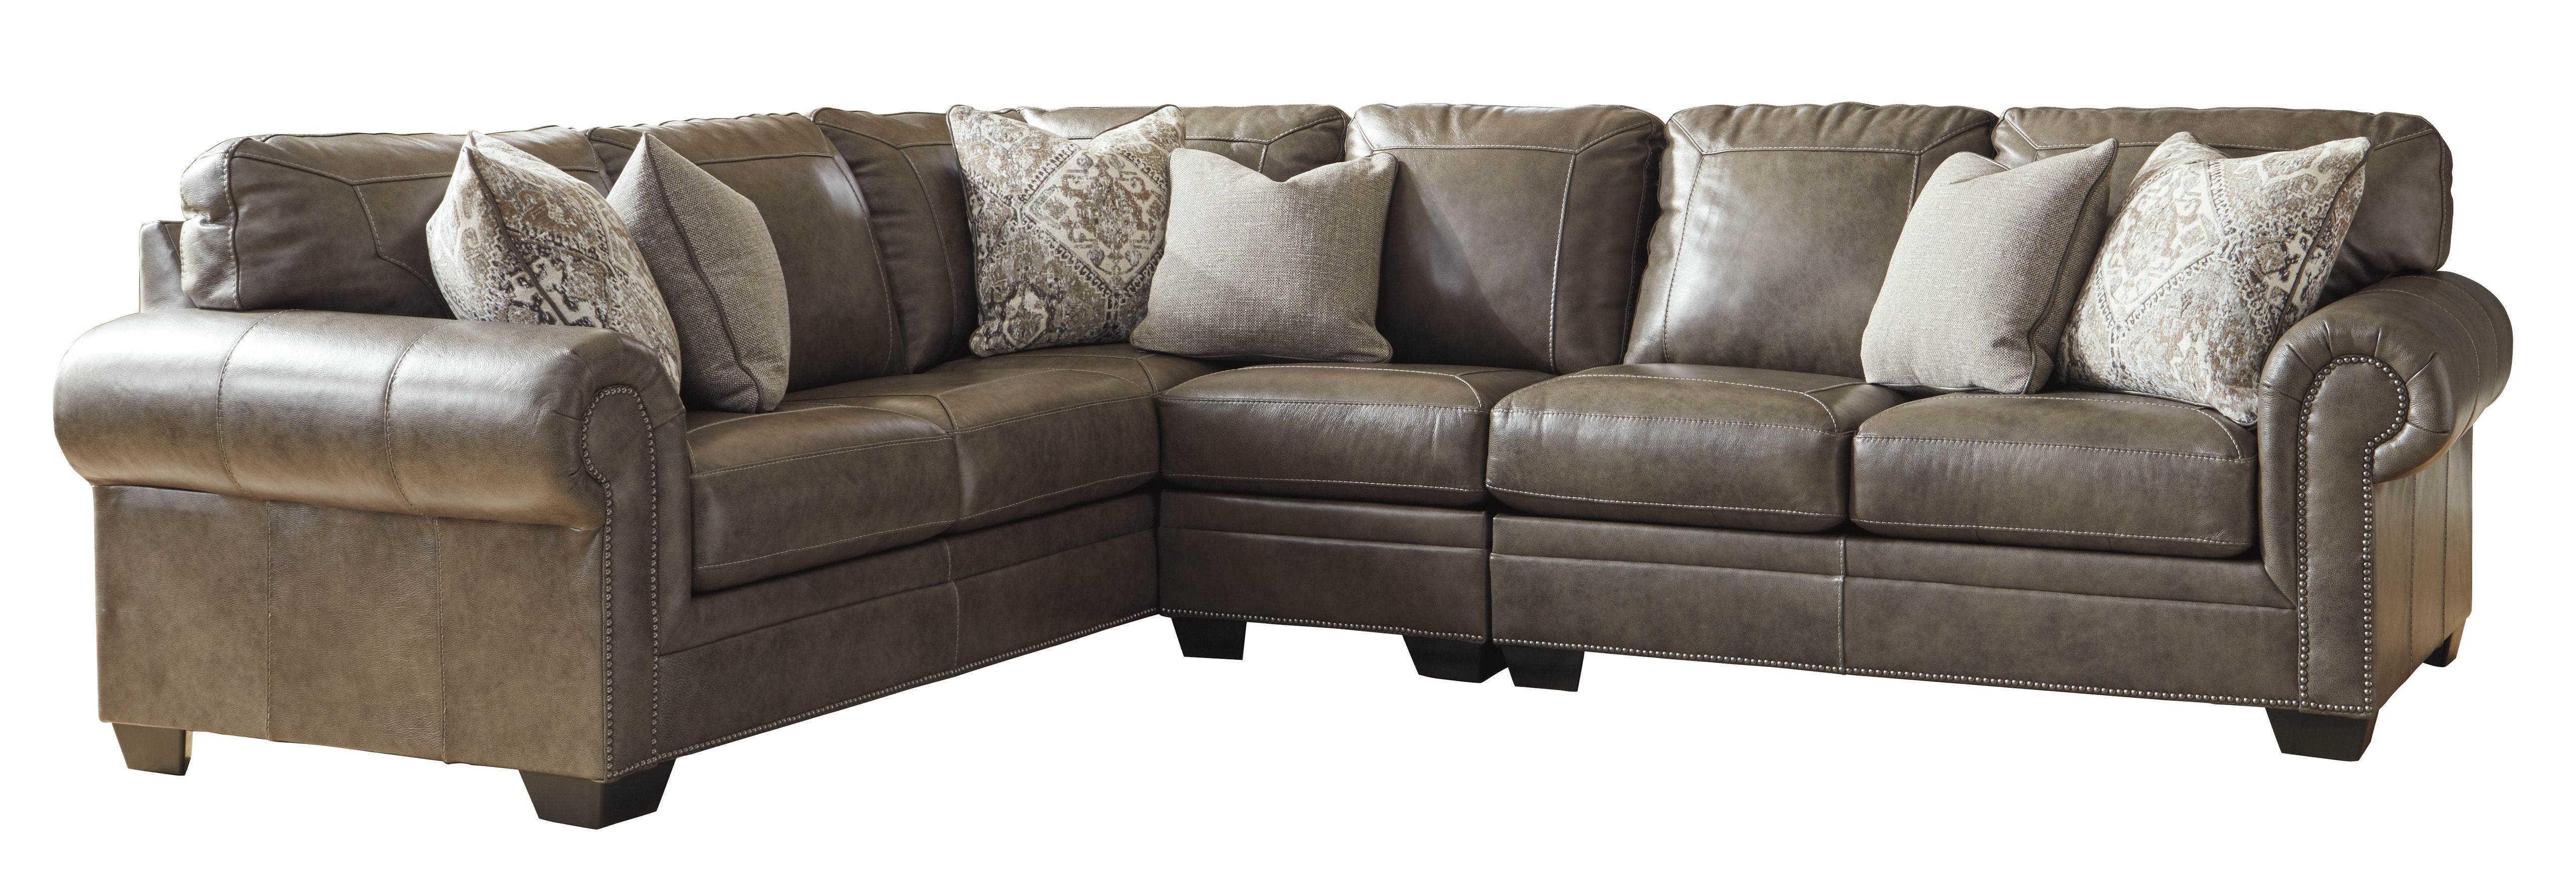 Strange Ashley Furniture Roleson Quarry Laf Sectional Pdpeps Interior Chair Design Pdpepsorg